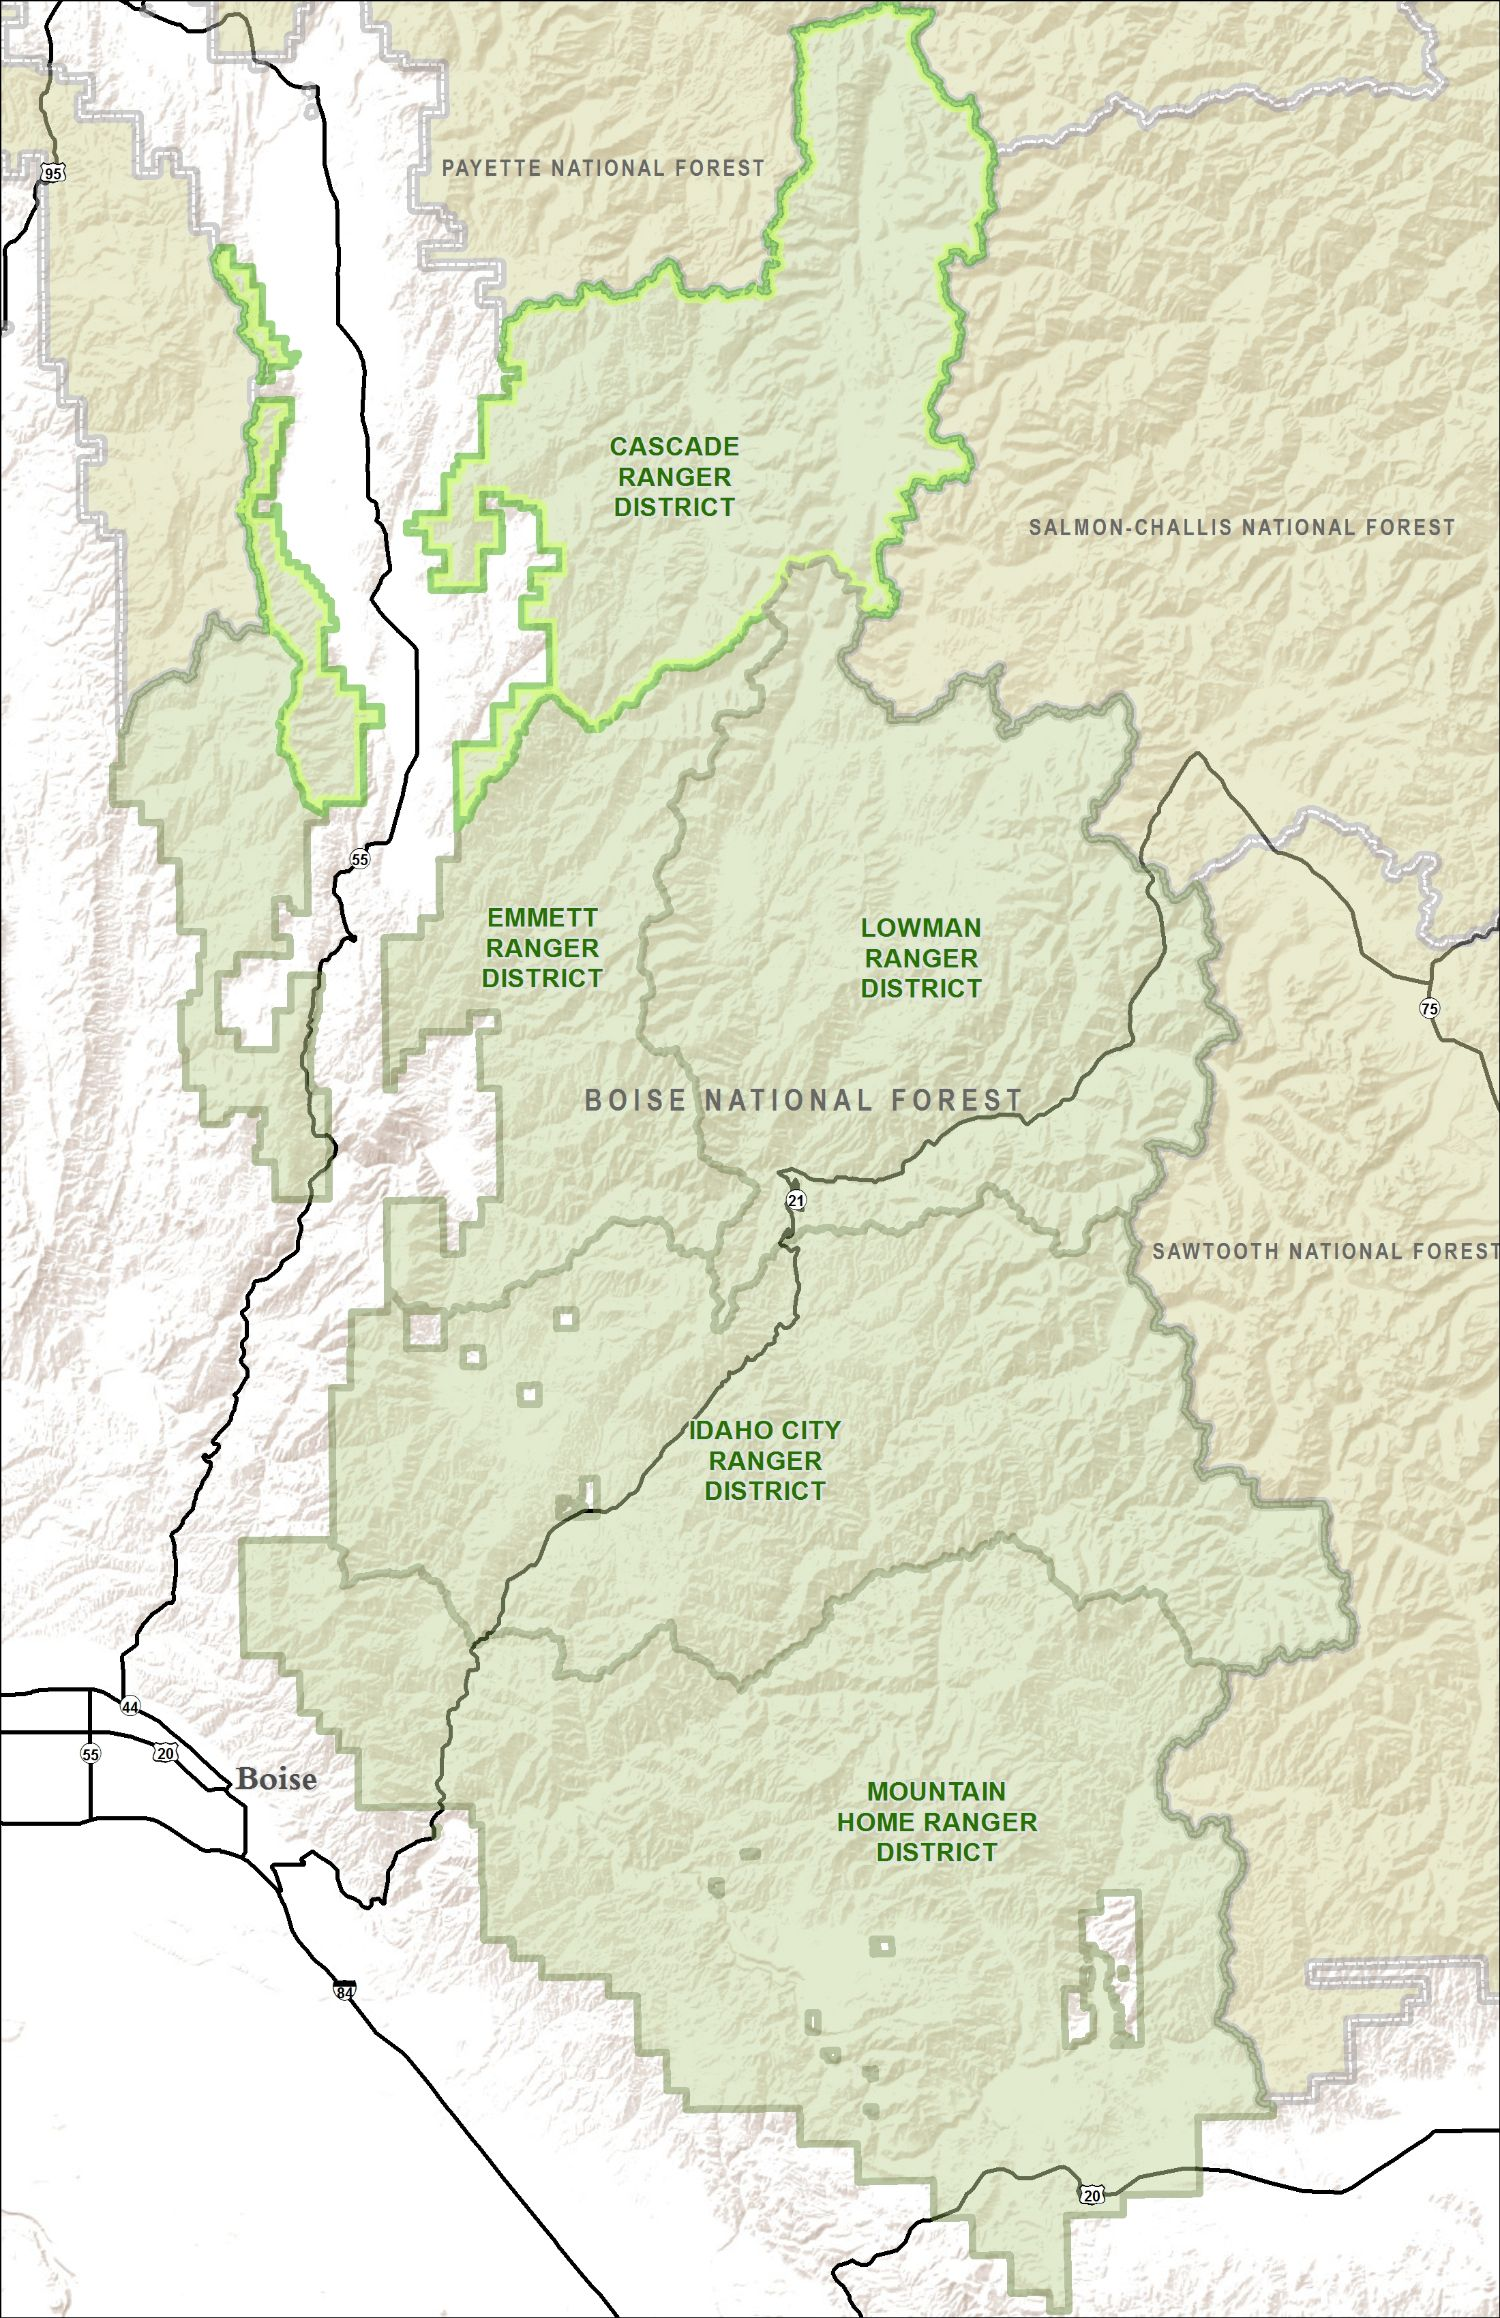 Boise National Forest Closures on